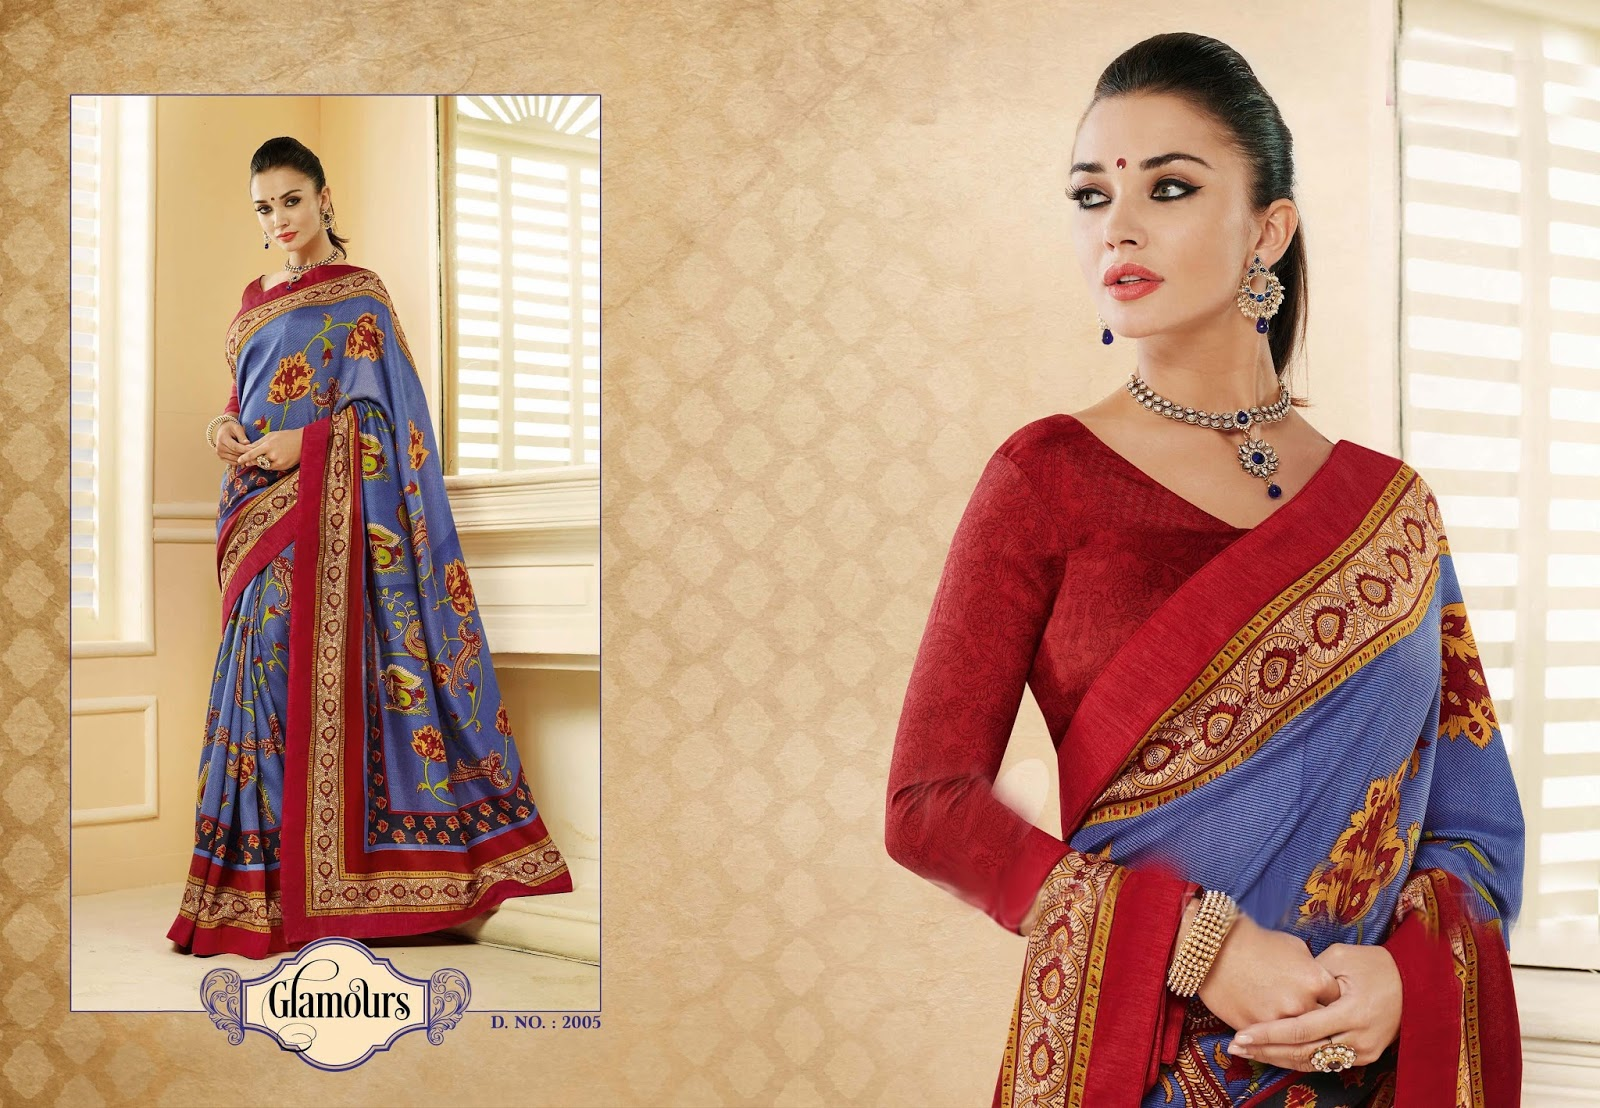 Amy jackson in saree advertisement